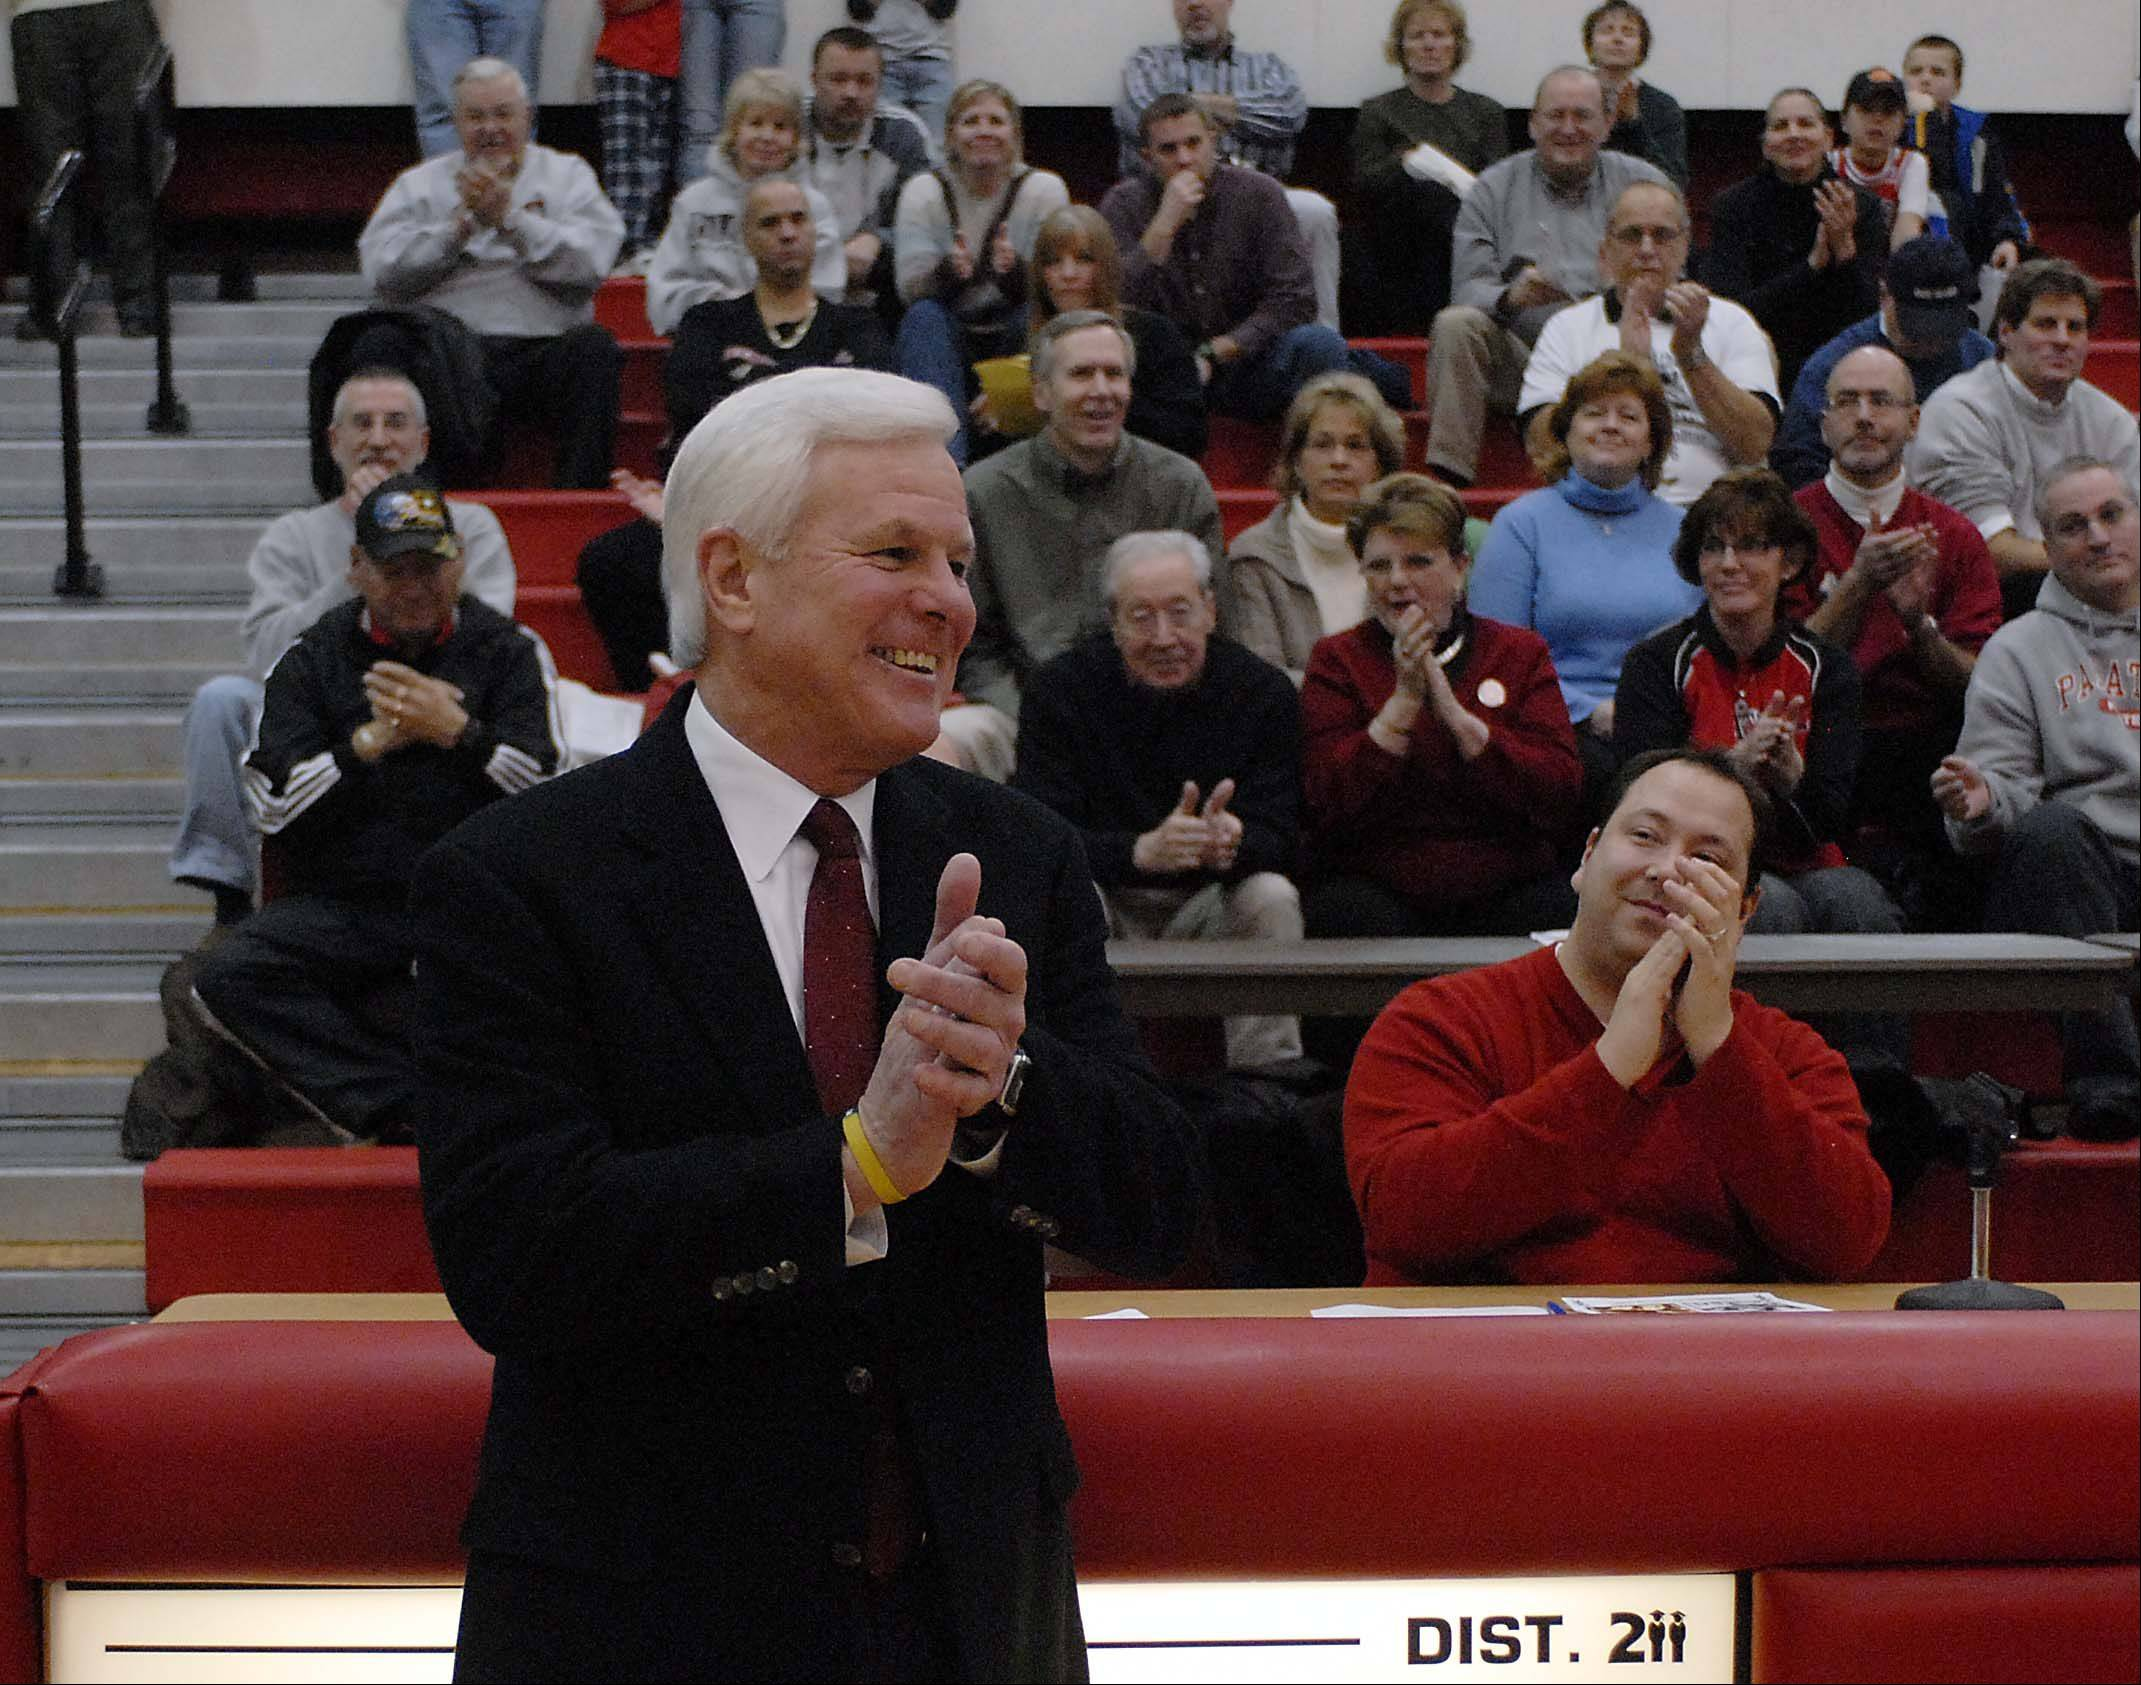 Basketball coach Ed Molitor leads an impressive group entering the Palatine High School athletics Hall of Fame this weekend.